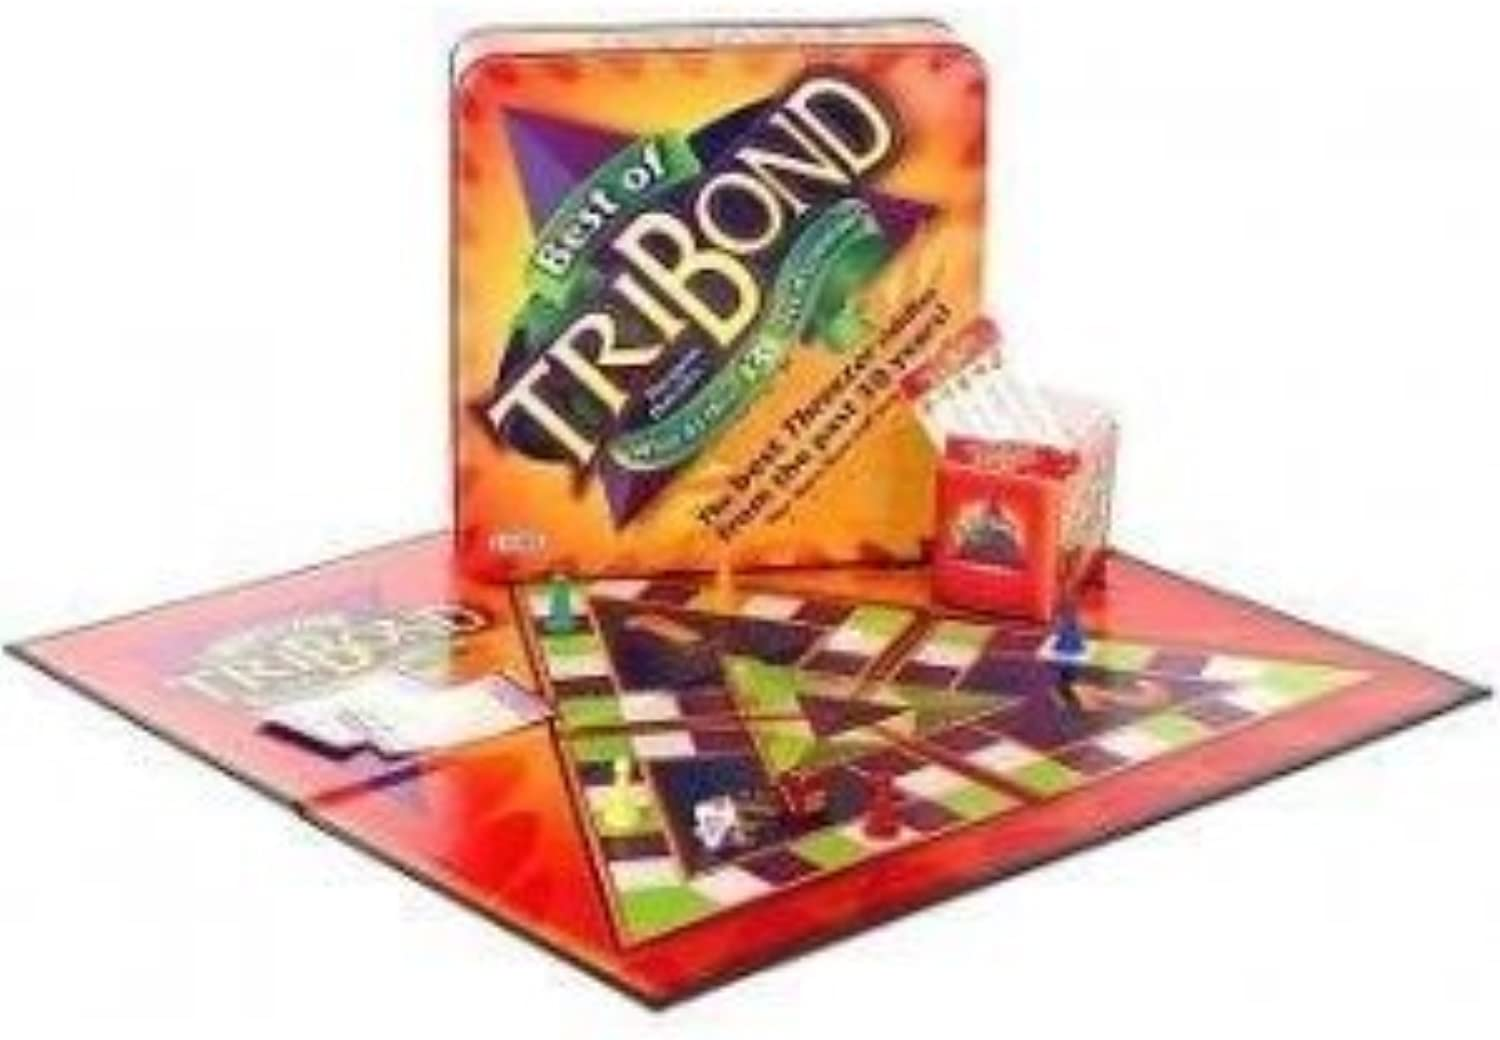 Best of Tribond by Patch Products